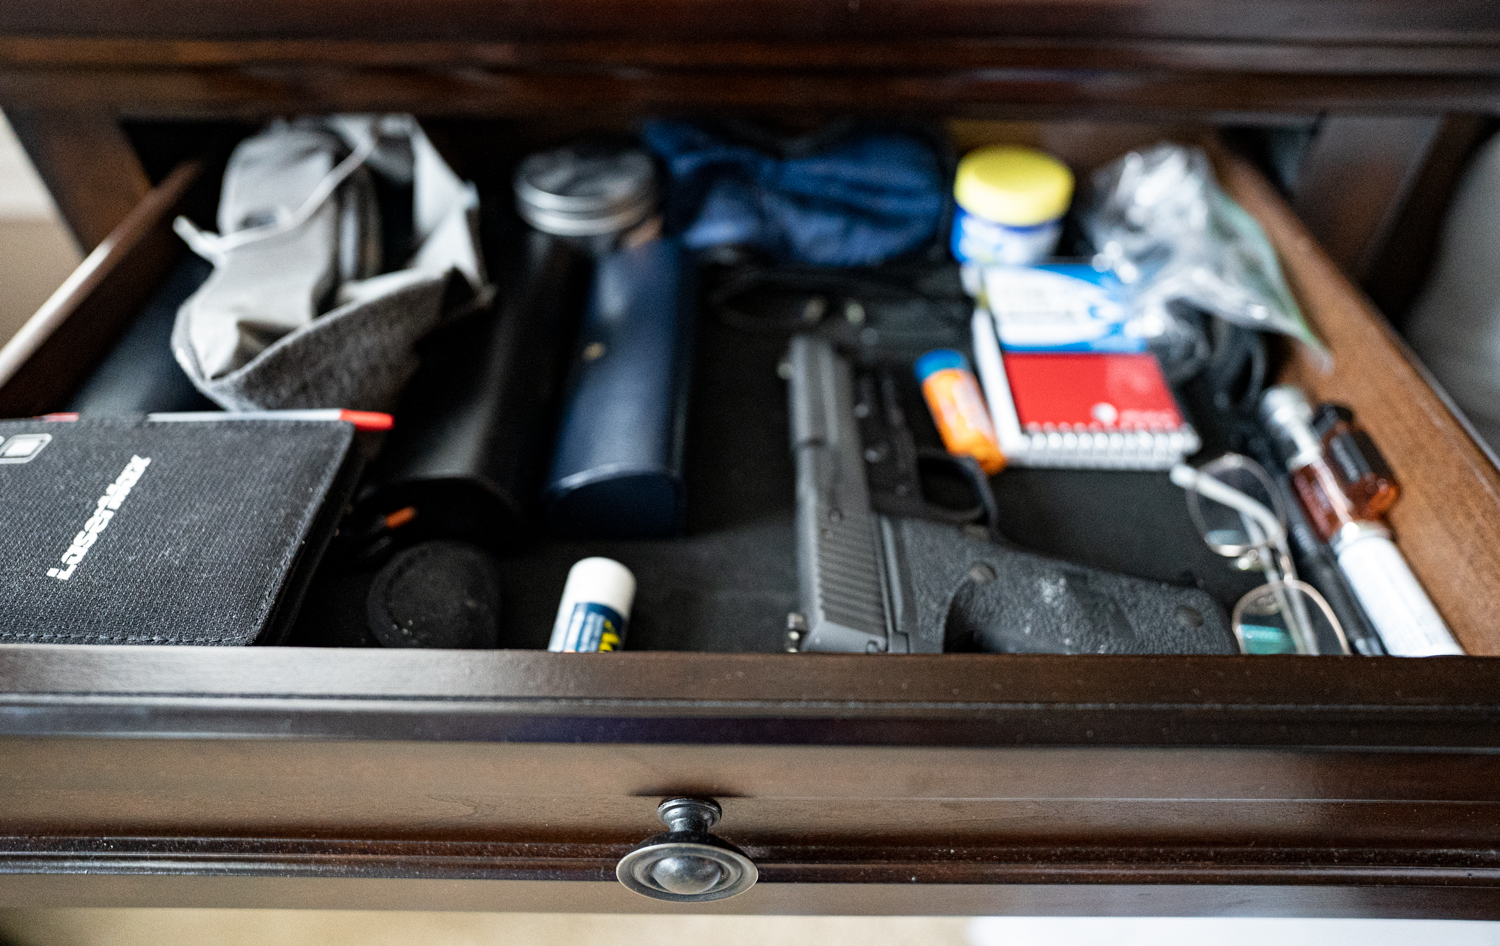 A pistol in a nightstand drawer